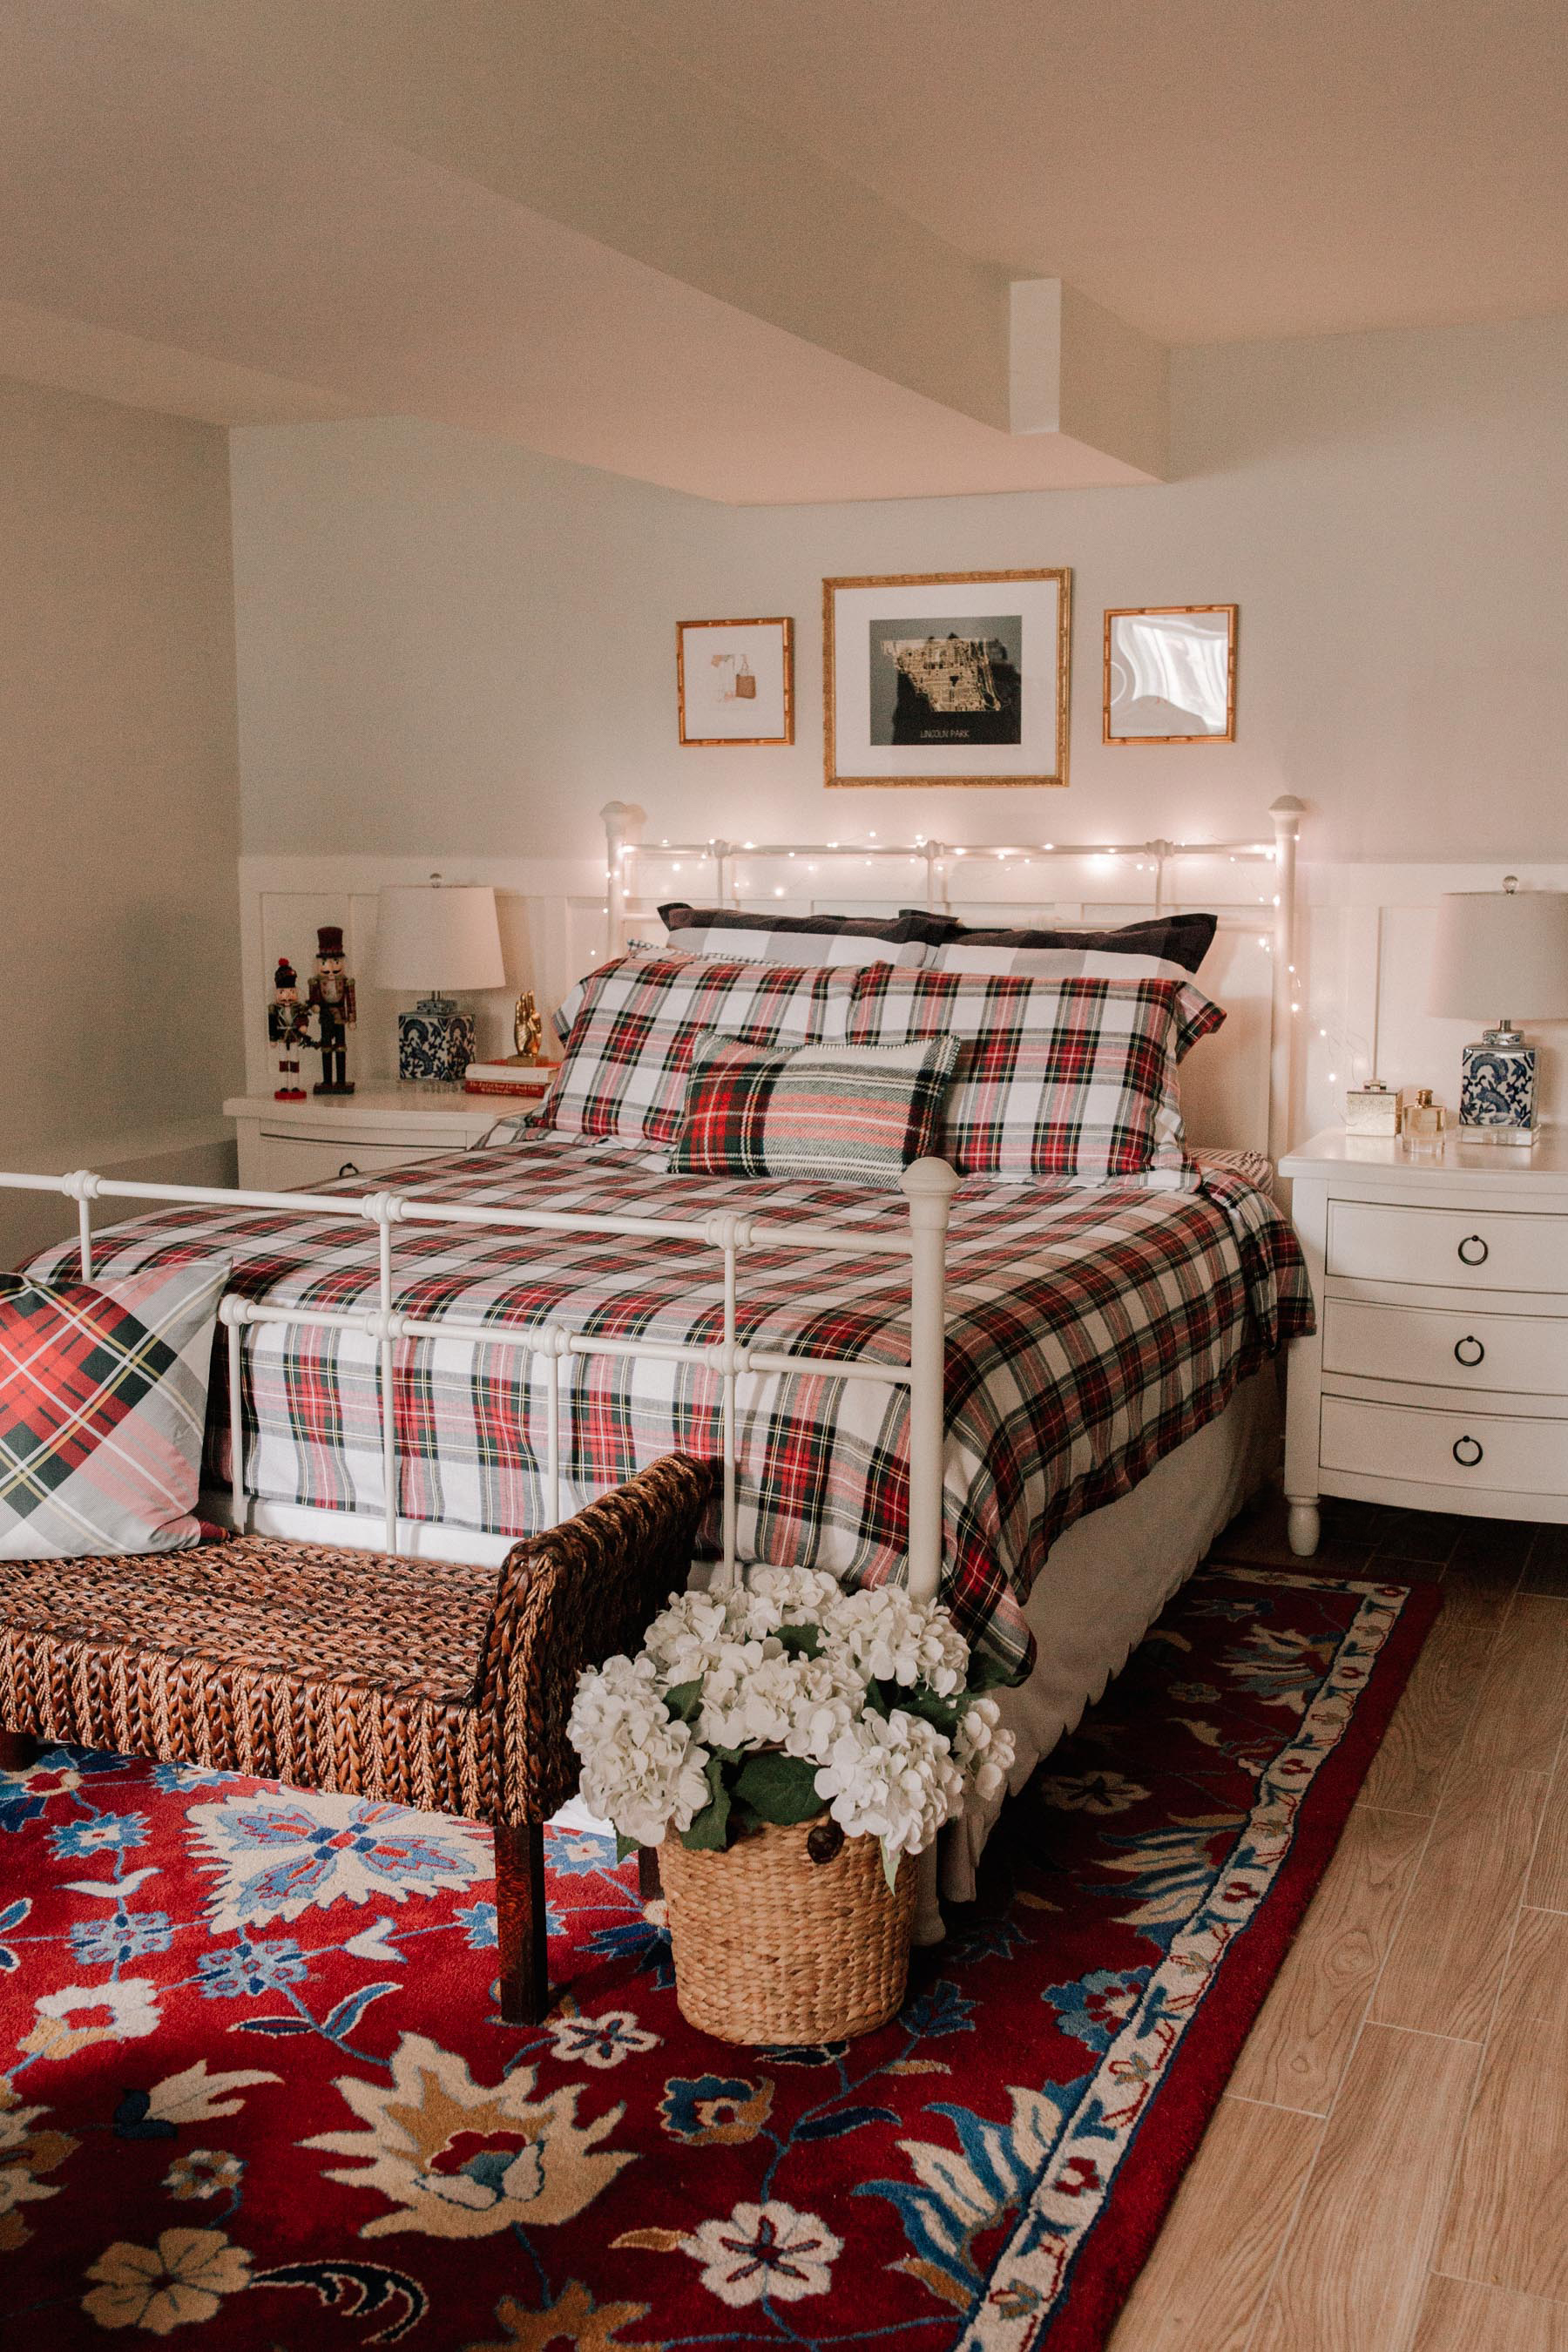 plaid christmas decor bedding - Plaid Christmas Decor